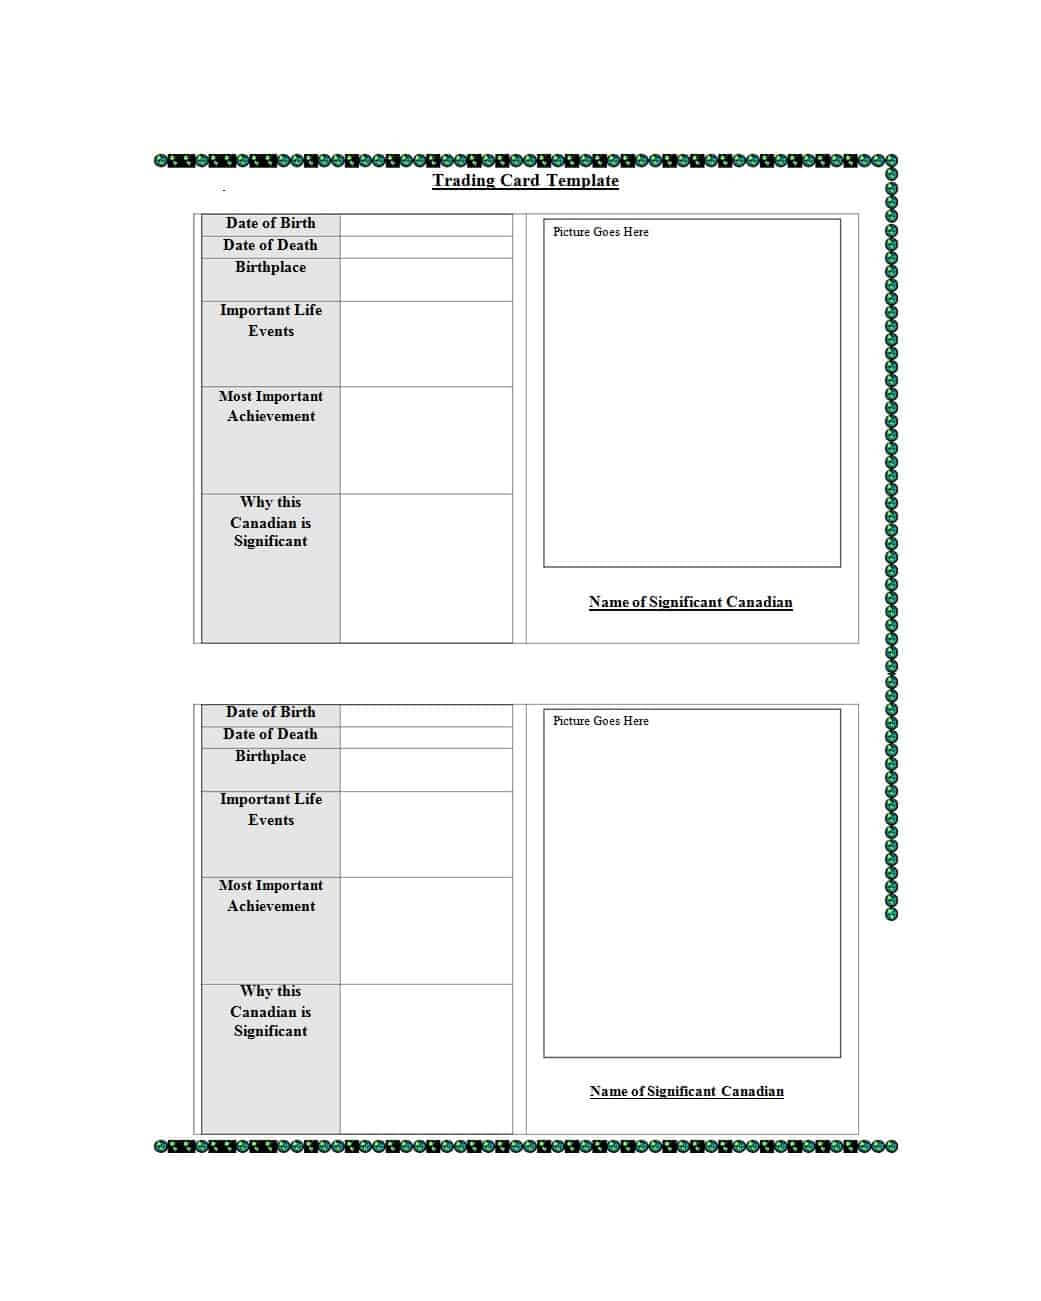 014 Template Ideas Printable Baseball Card Free Archaicawful inside Free Sports Card Template